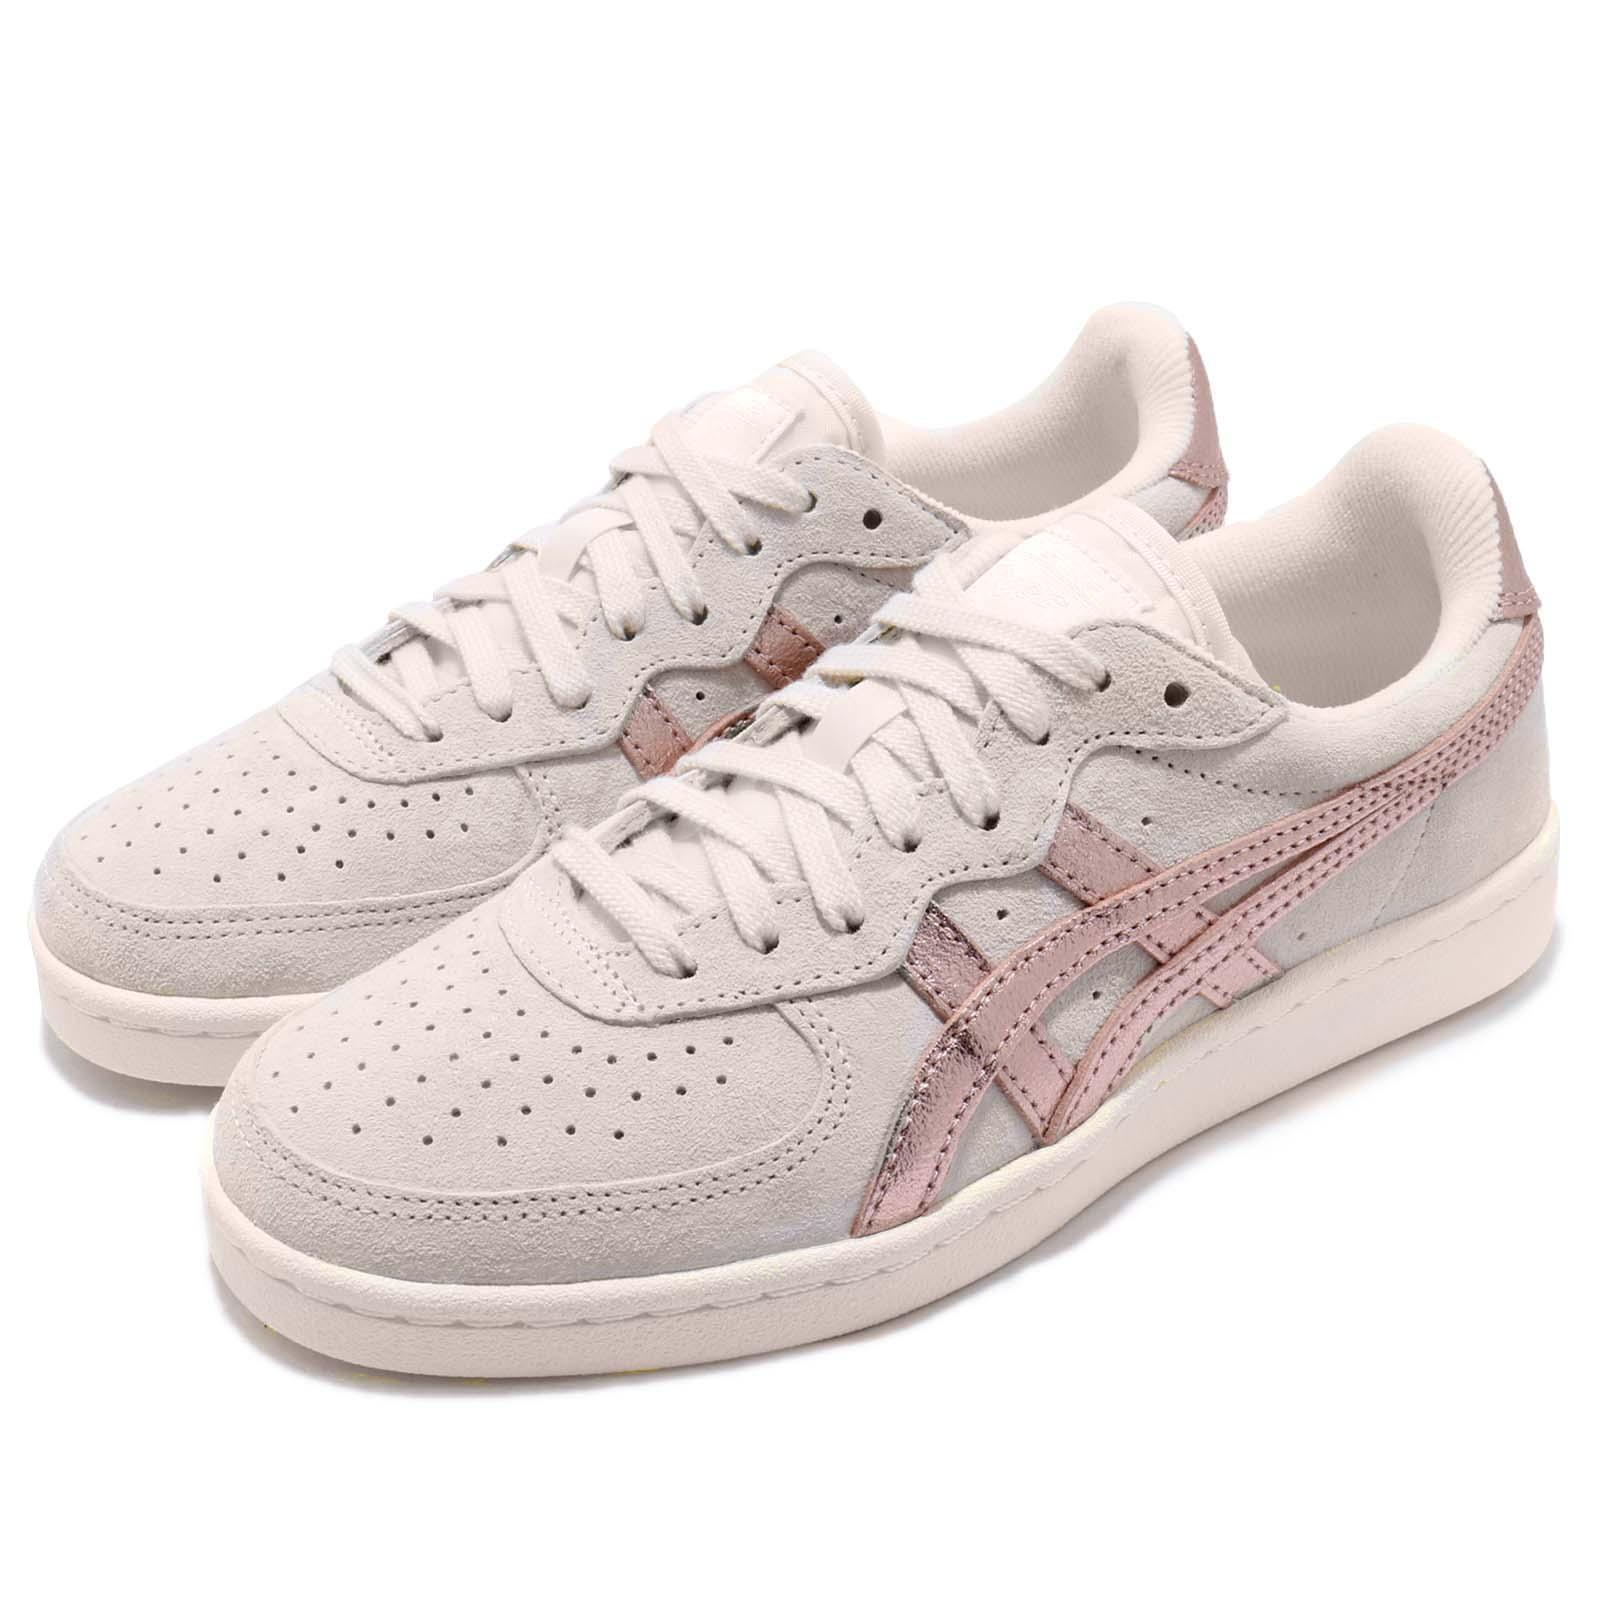 Details about Asics Onitsuka Tiger GSM Cream Rose Water Pink Womens Casual  Shoes 1182A014-100